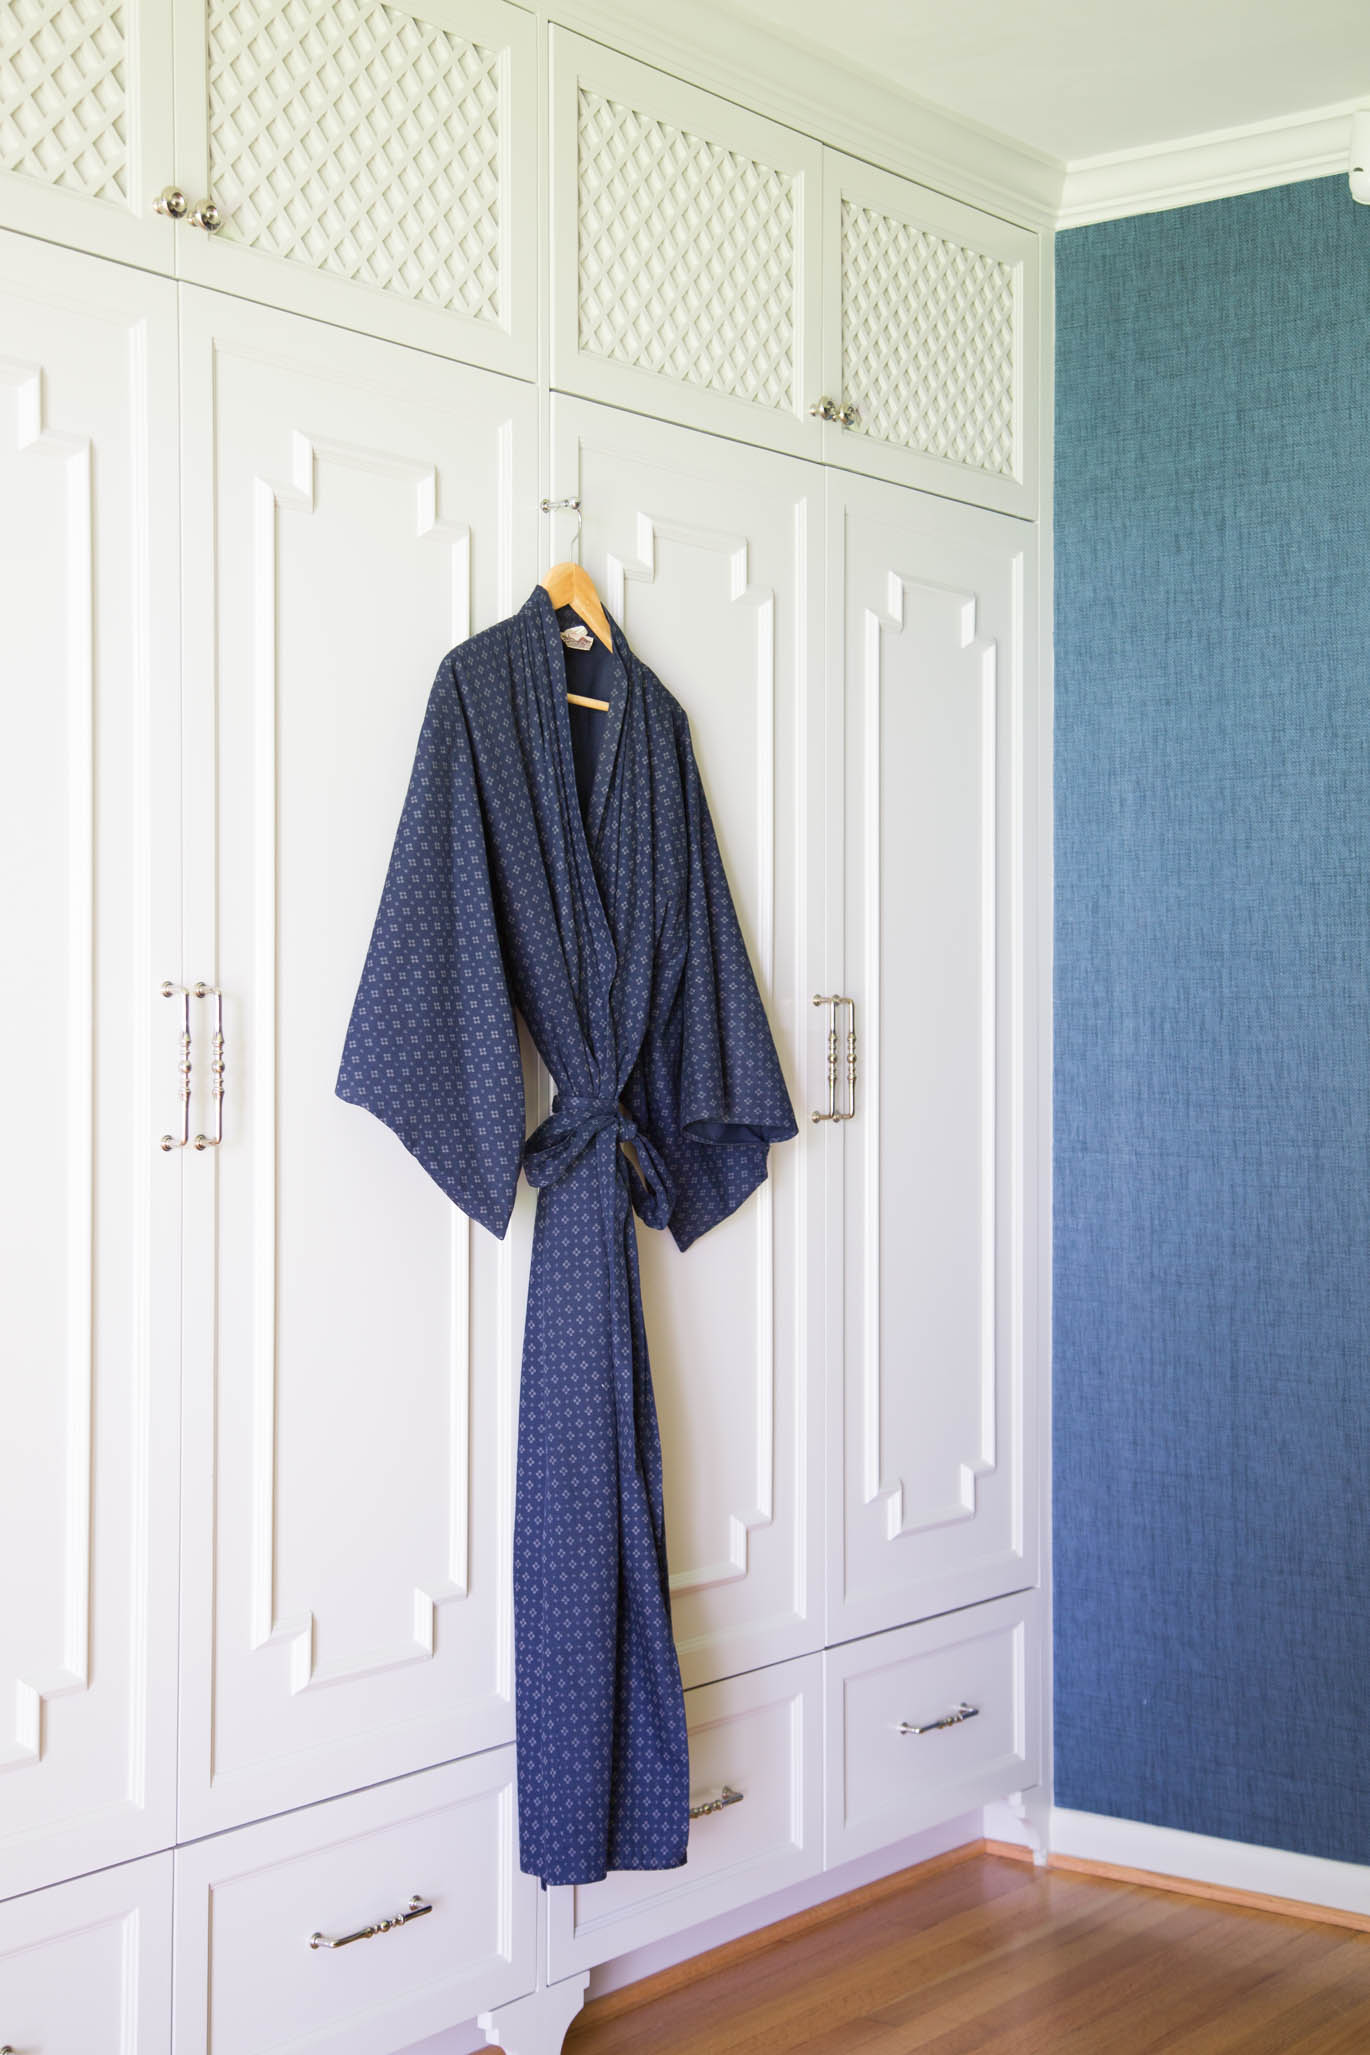 Mouldings and trim details were added to the face of these wardrobe style closet doors to create a chinoiserie styling. Designer: Carla Aston, Photographer: Tori Aston #mouldings #wardrobestylecloset #cabinetry #interiordesigntips